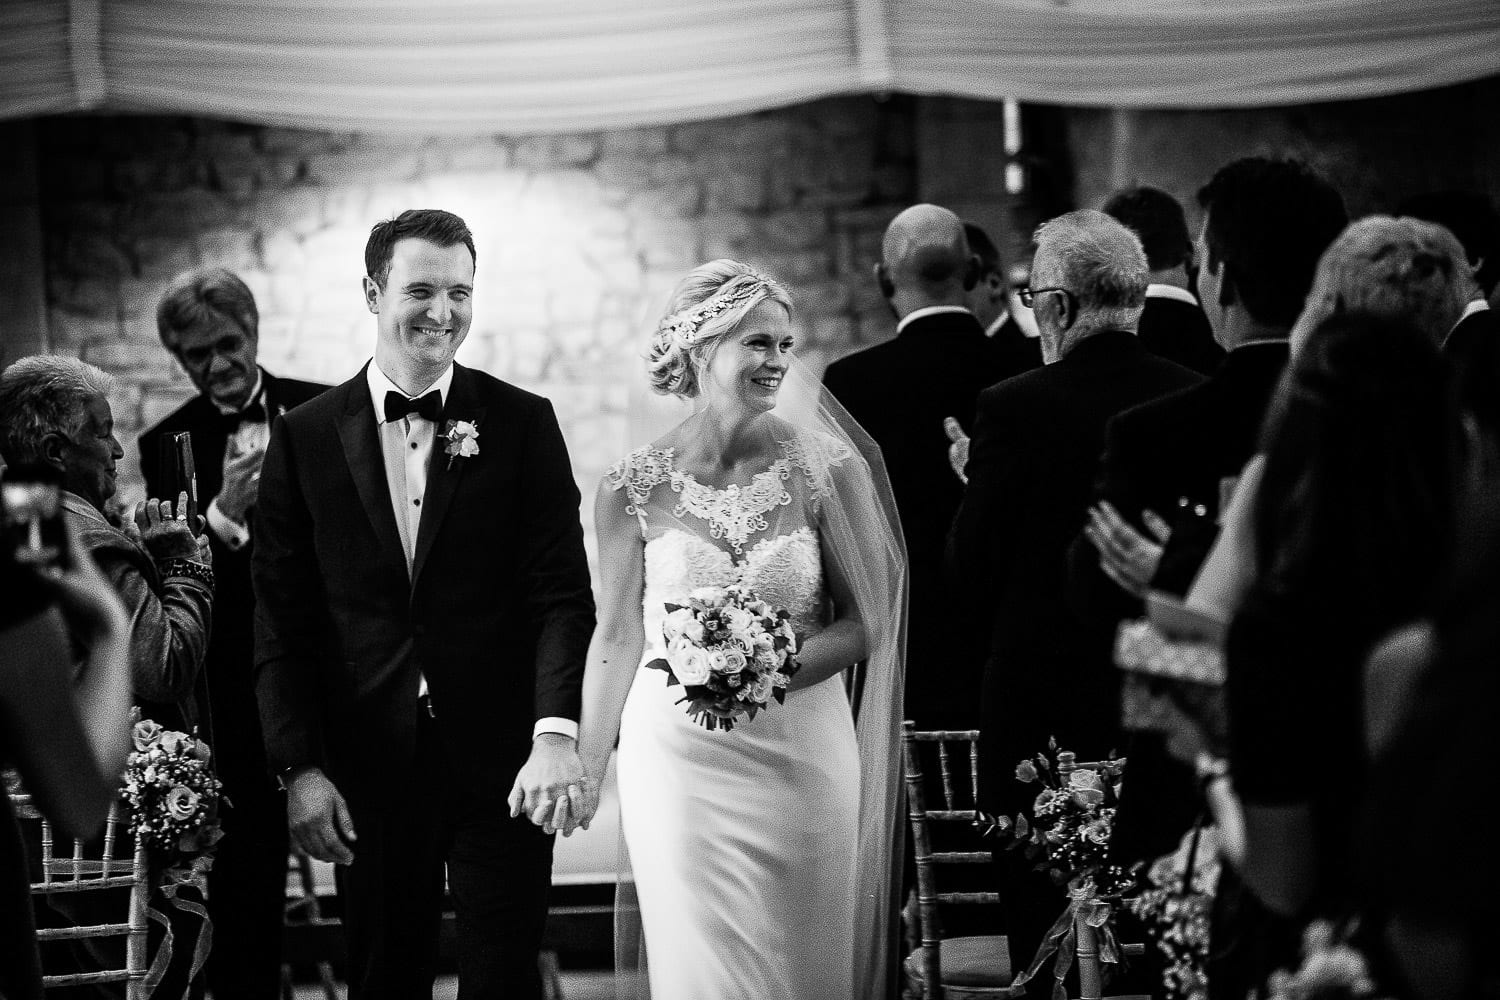 Black and white image of bride and groom's exit